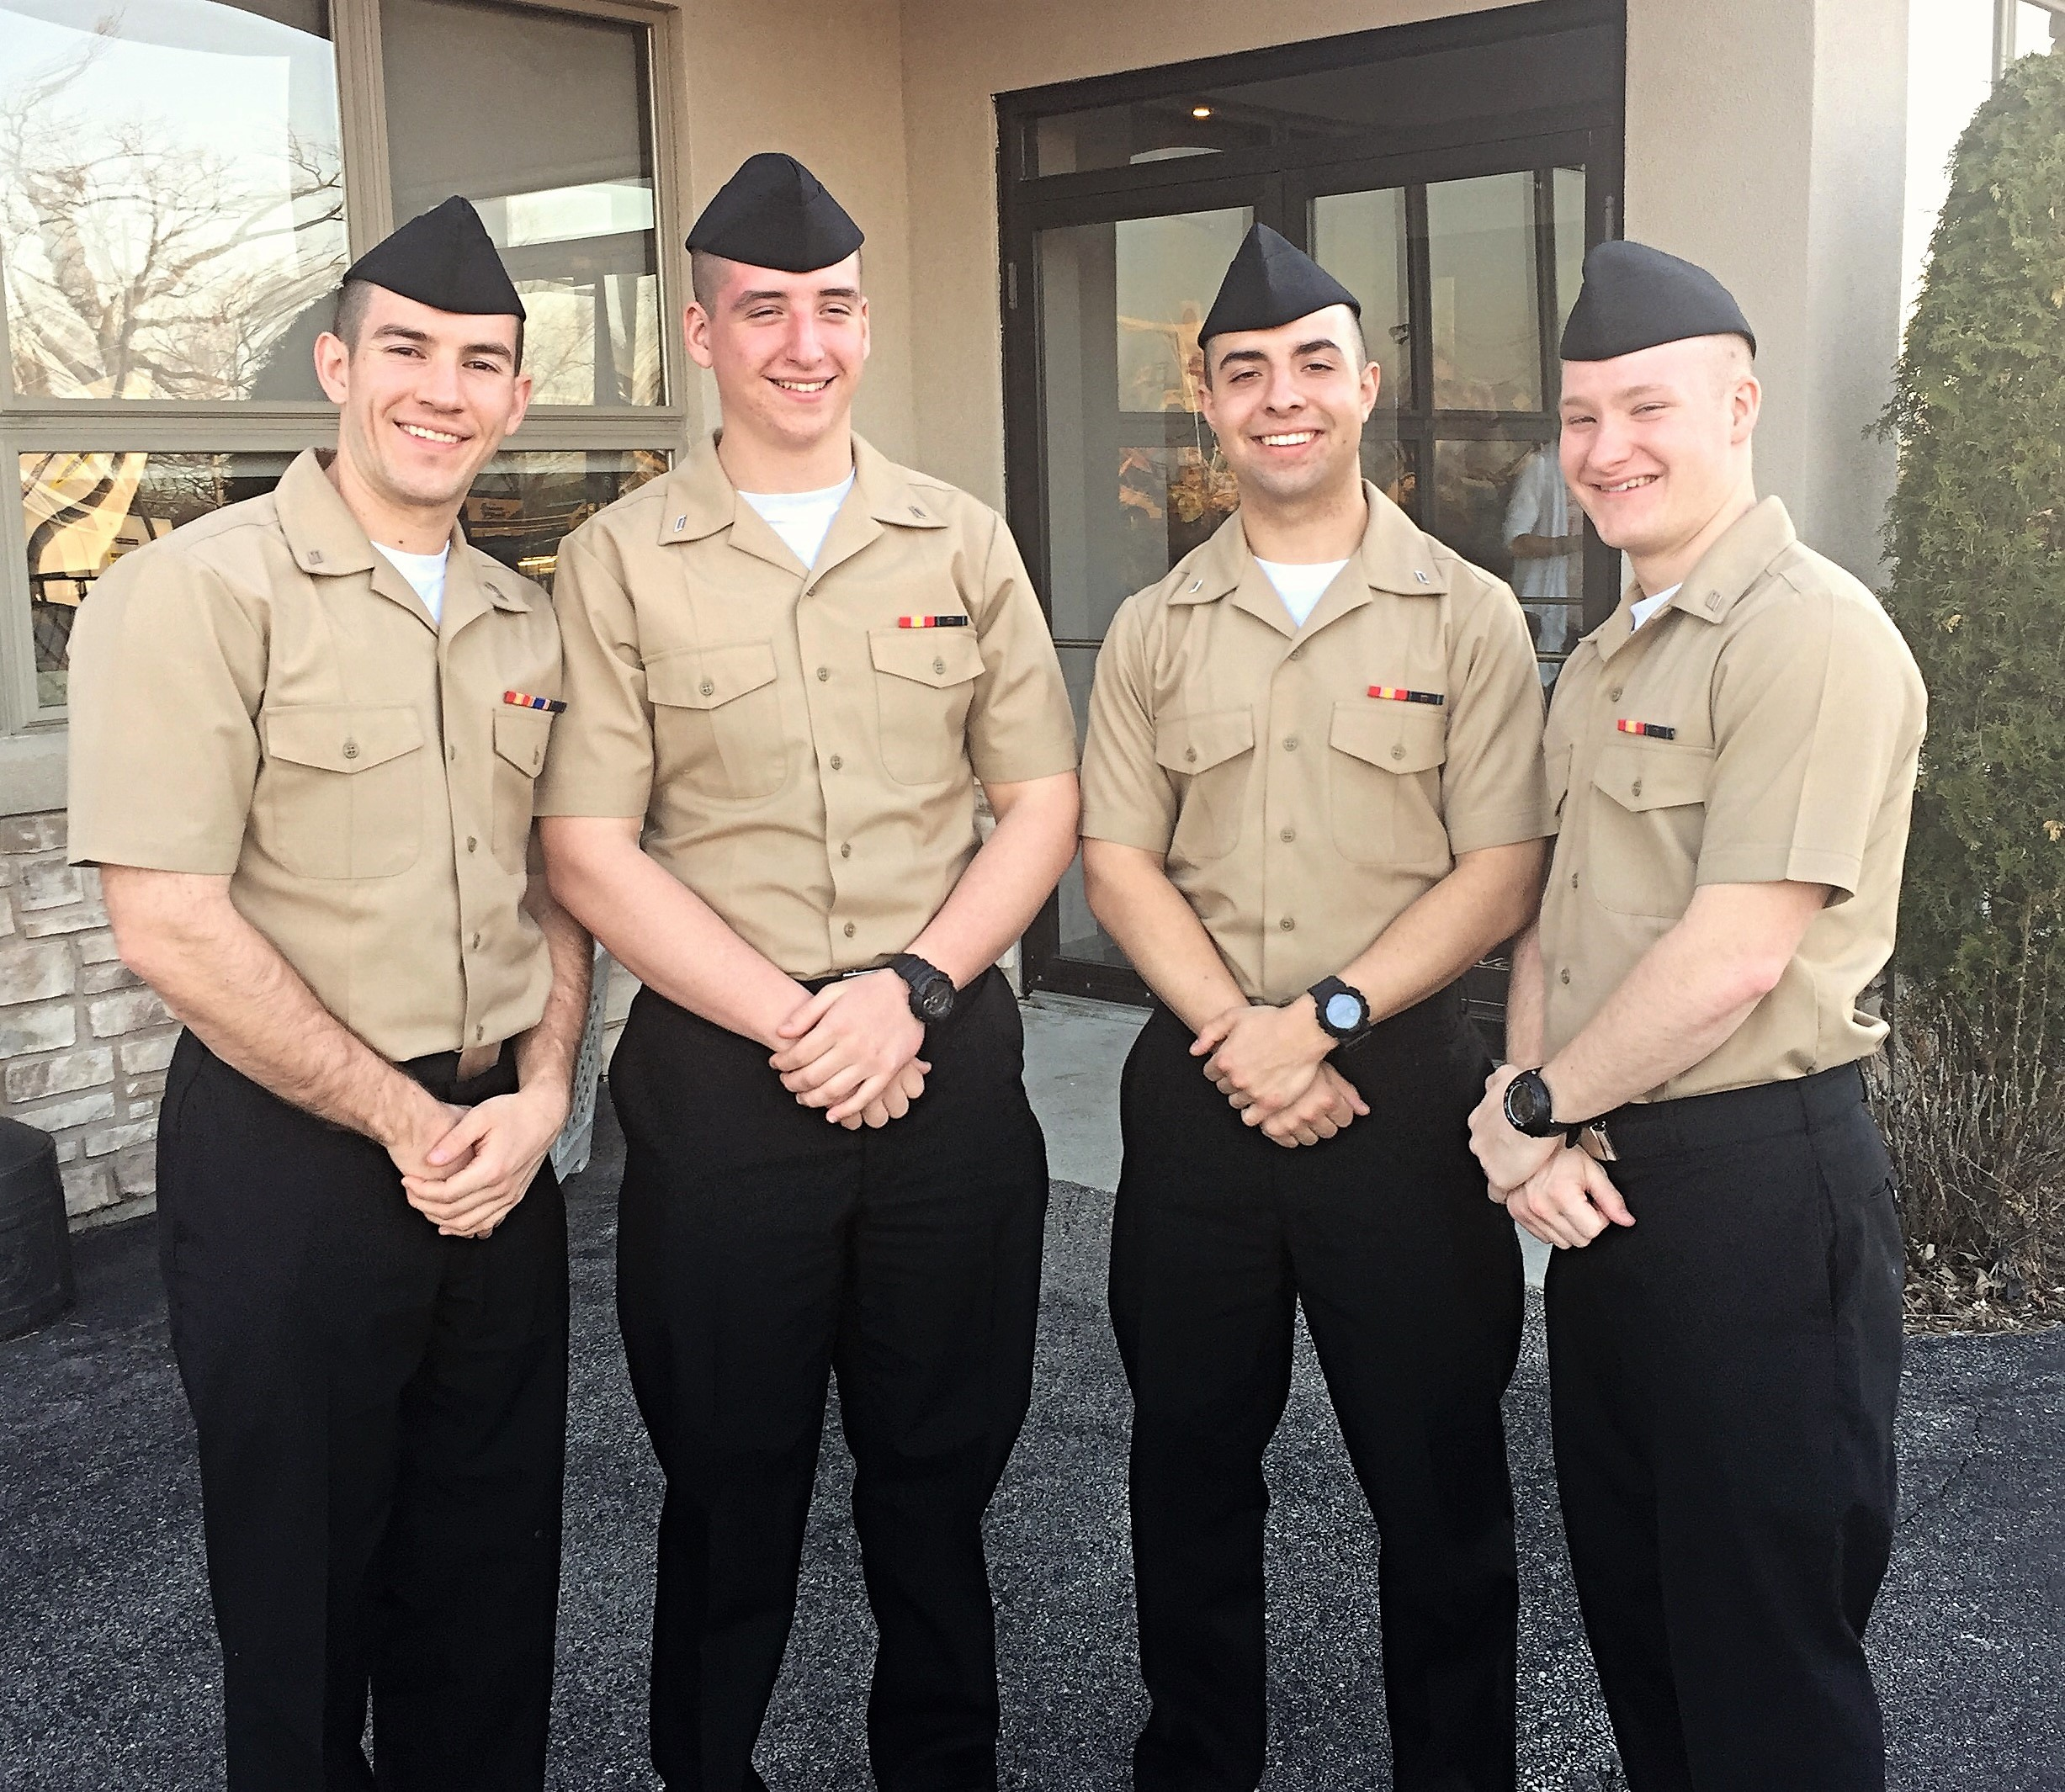 Nick with buddies after boot camp.jpg